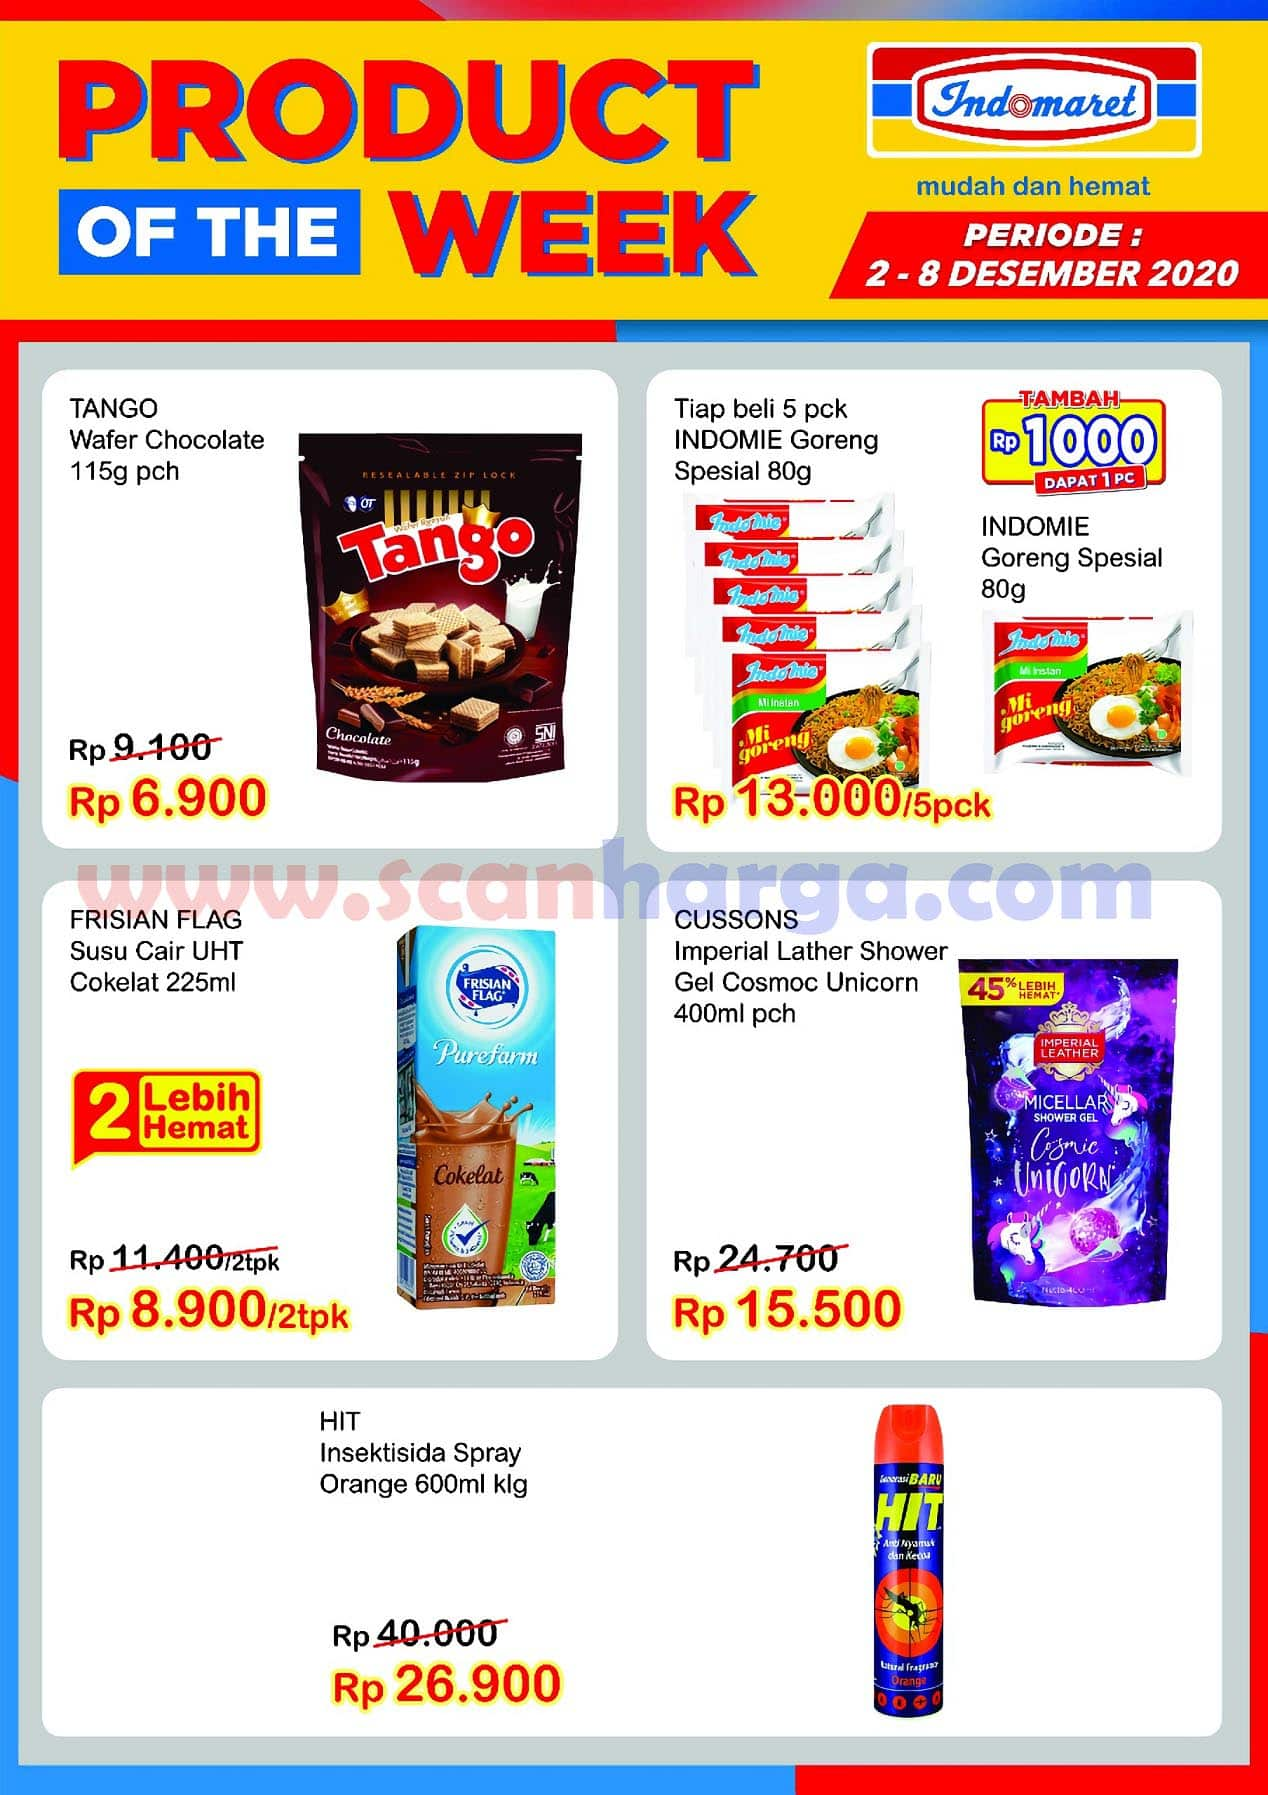 Indomaret Product Of The Week Promo PTW 2 - 8 Desember 2020